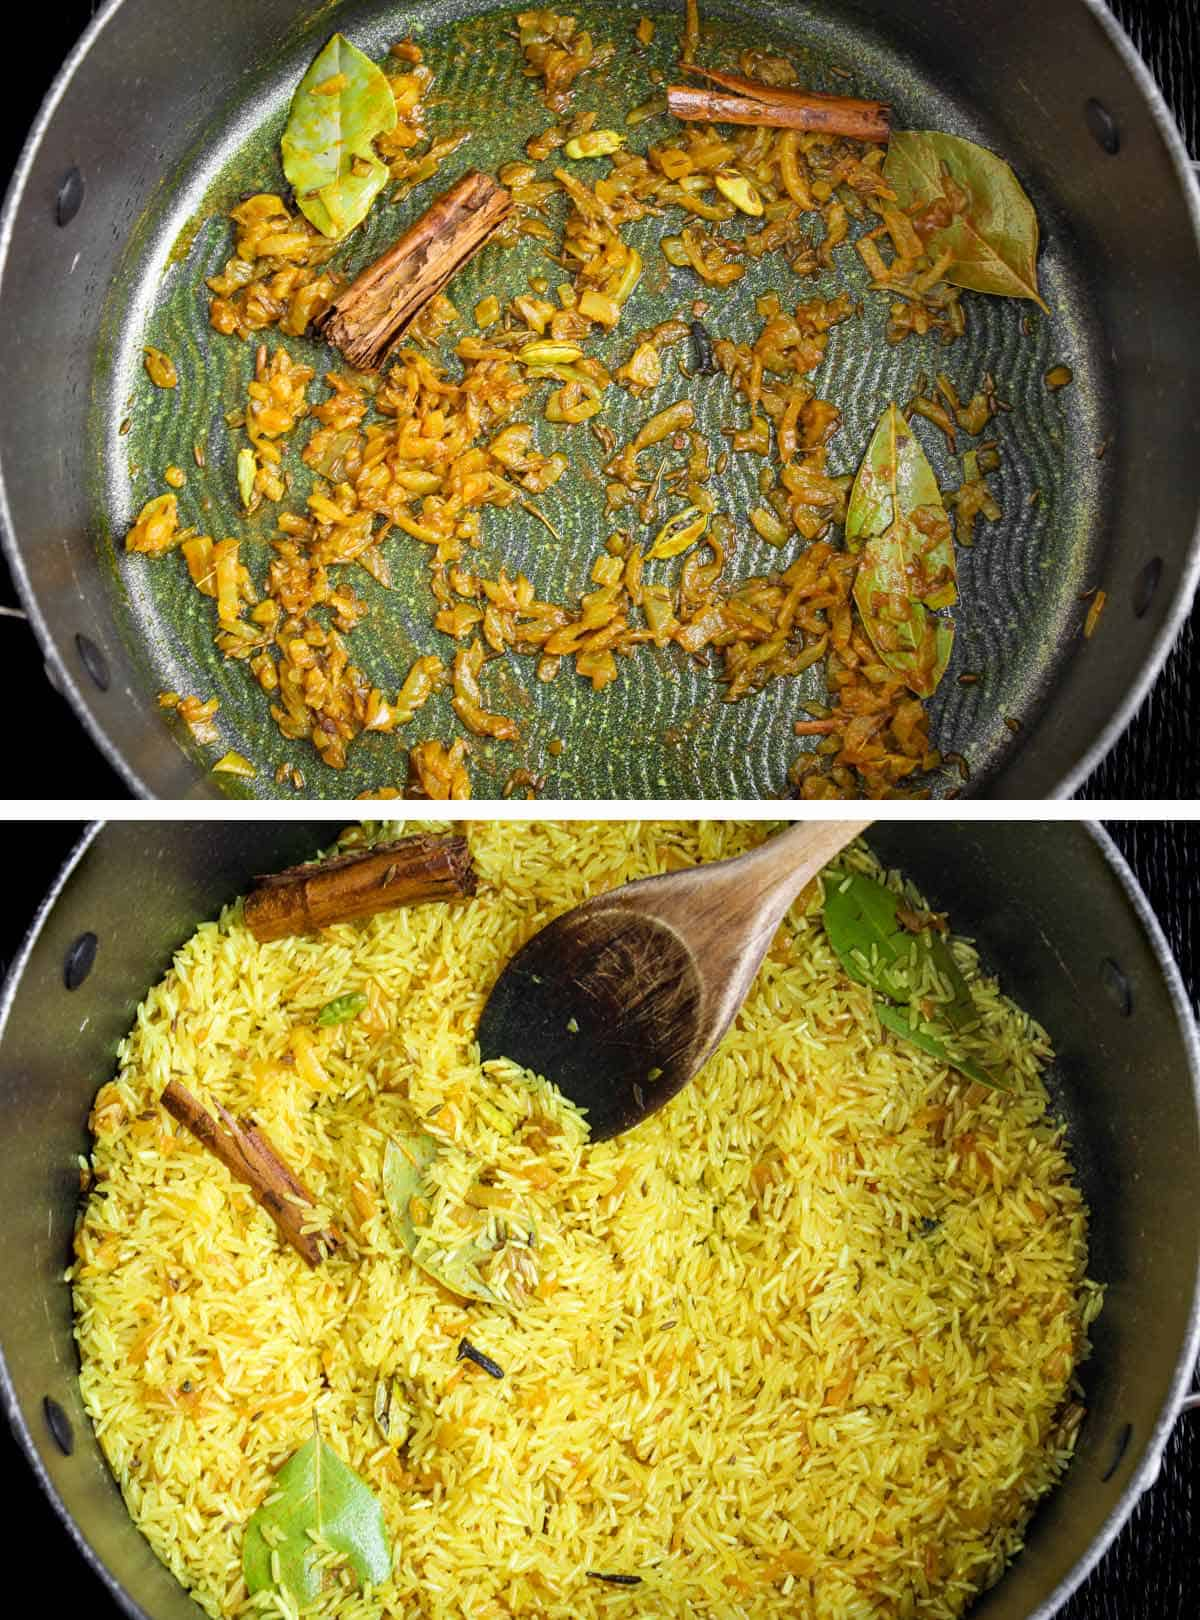 Onions and Spices Frying then Rice Added to Pan